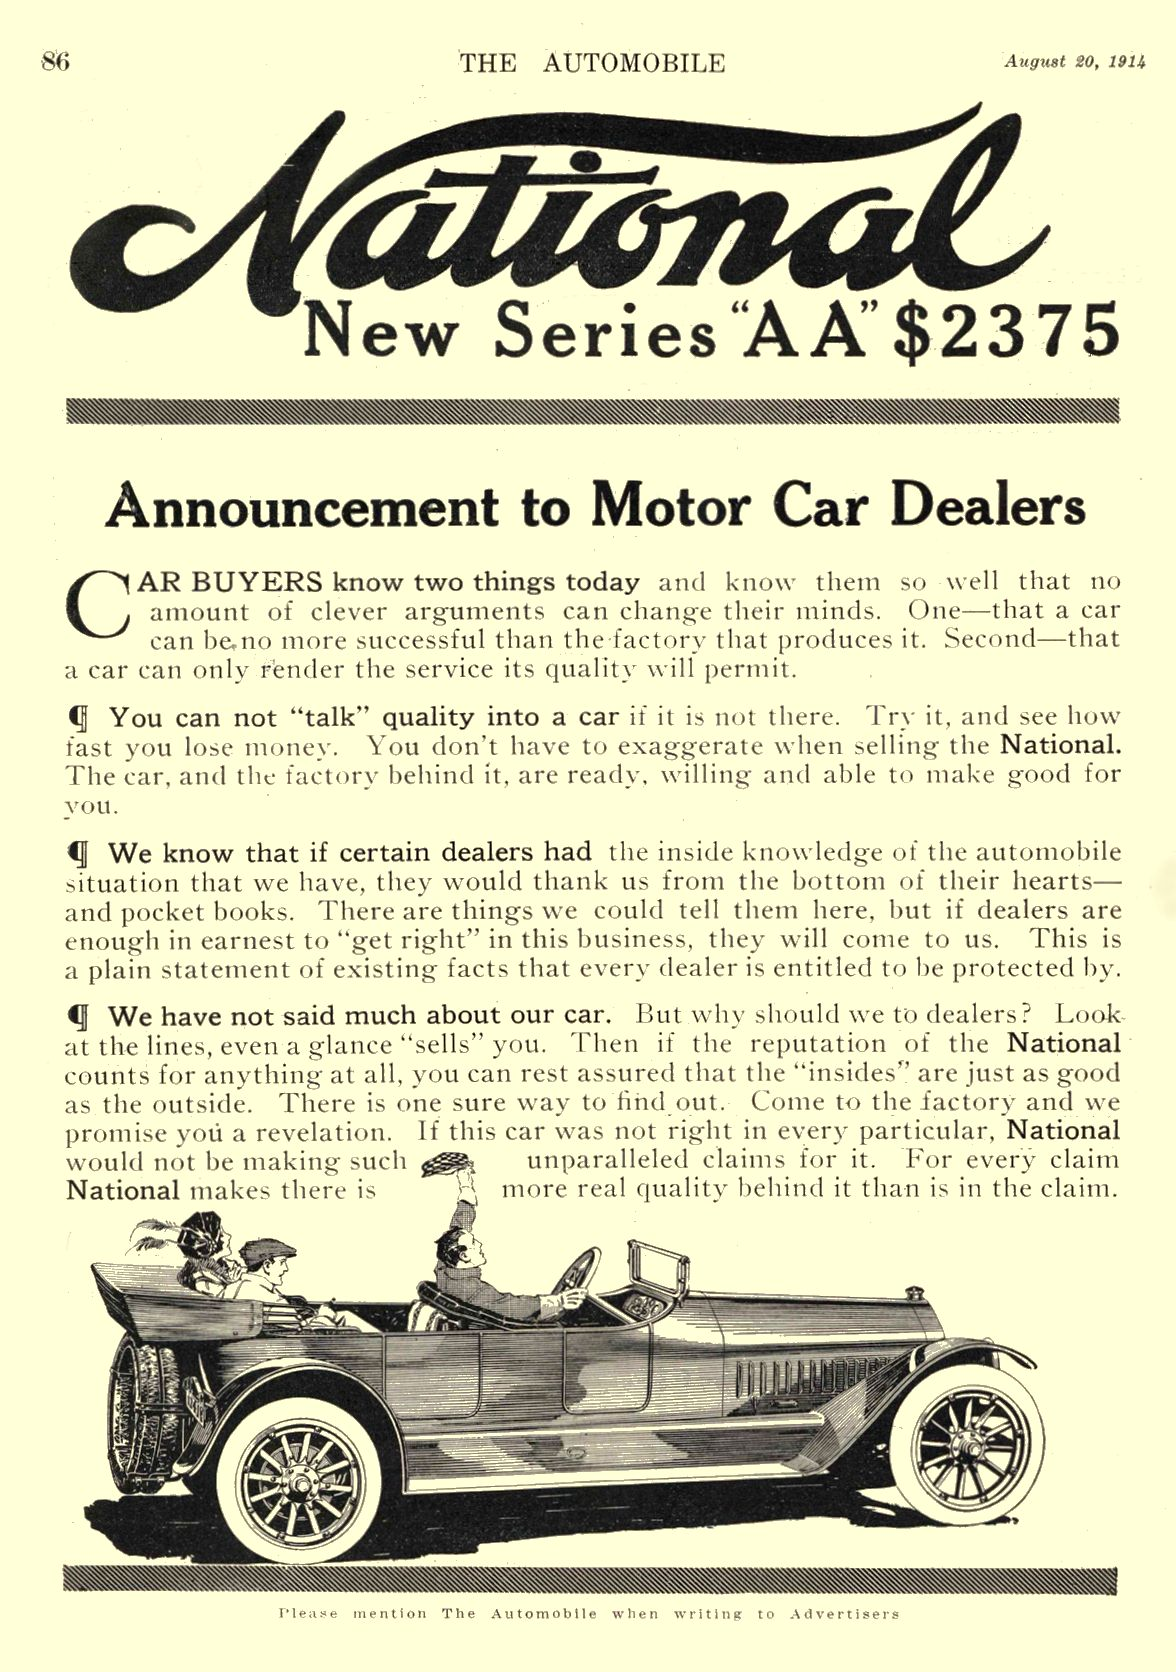 """1914 8 20 NATIONAL New Series """"AA"""" $2375 Announcement to Motor Car Dealers National Motor Vehicle Co. Indianapolis, IND THE AUTOMOBILE August 20, 1914 8.5″x12″ page 86"""